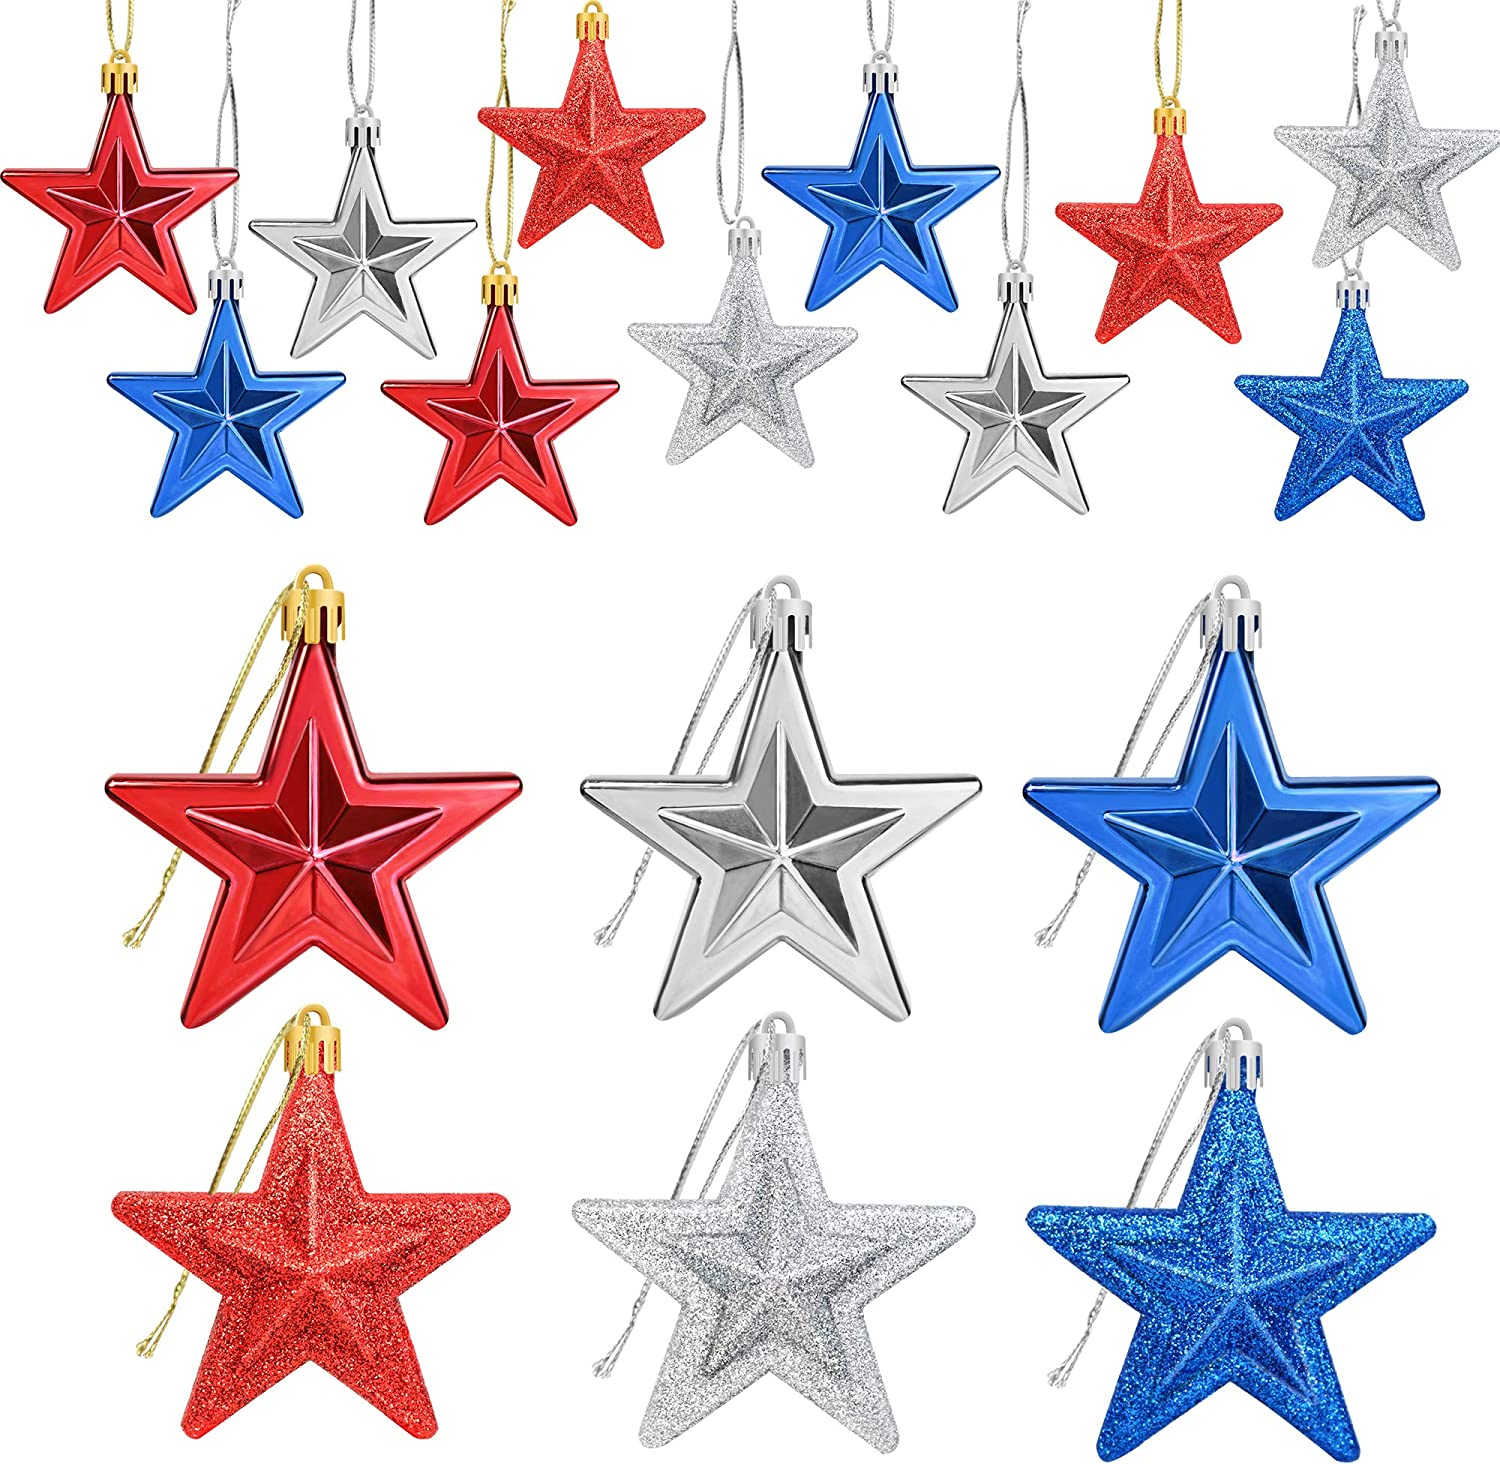 24Pcs 4th of July Patriotic Star Ornaments - Fourth of July Patriotic Decorations - Red Blue Silver Star Shaped Baubles Ornament for Home Tree - 4th of July Patriotic Party Home Star Hanging Ornament